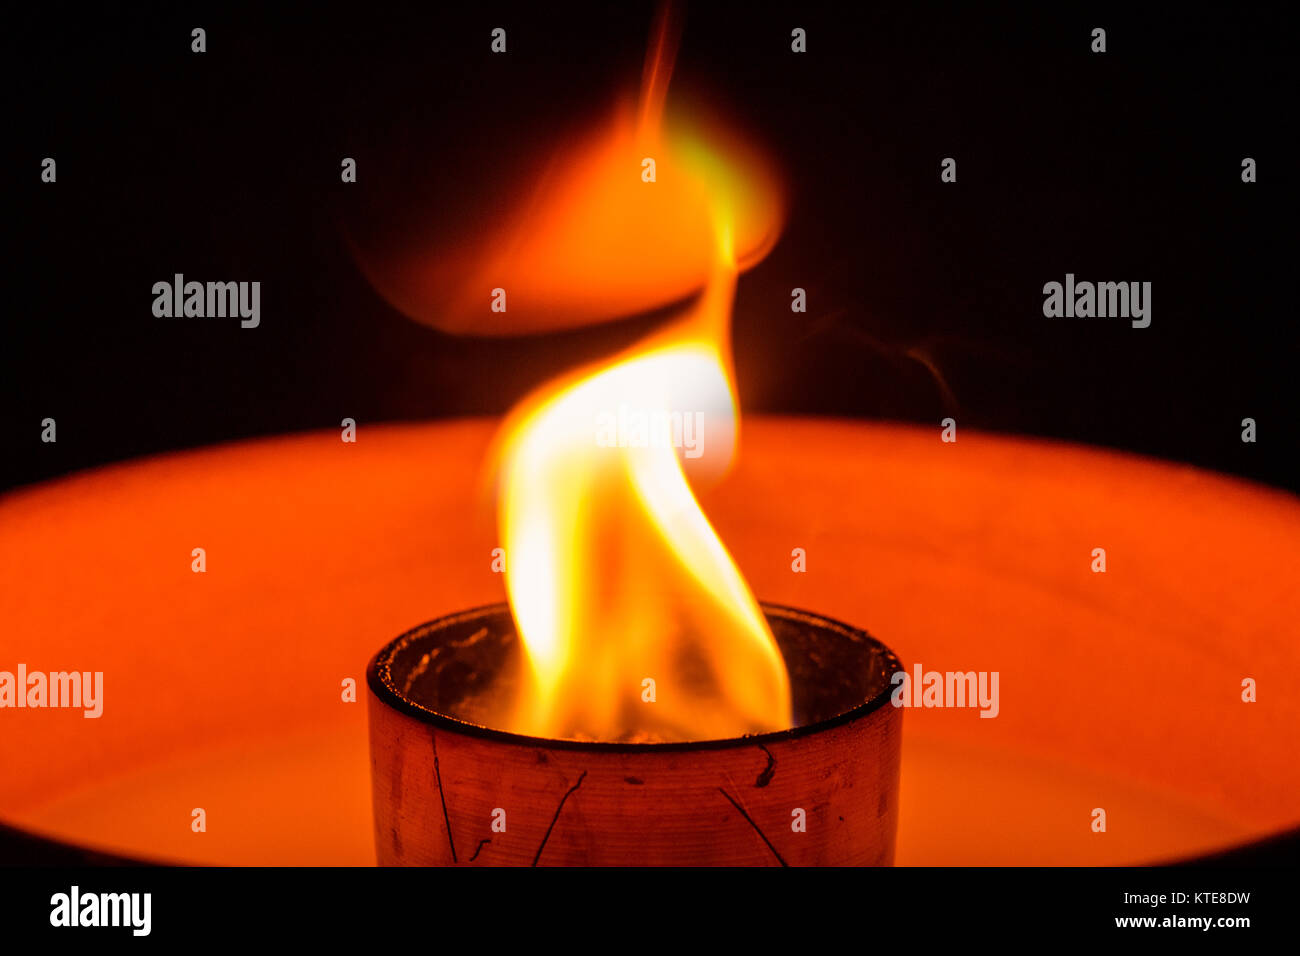 Flame of Waxburner in the darkness. Stock Photo